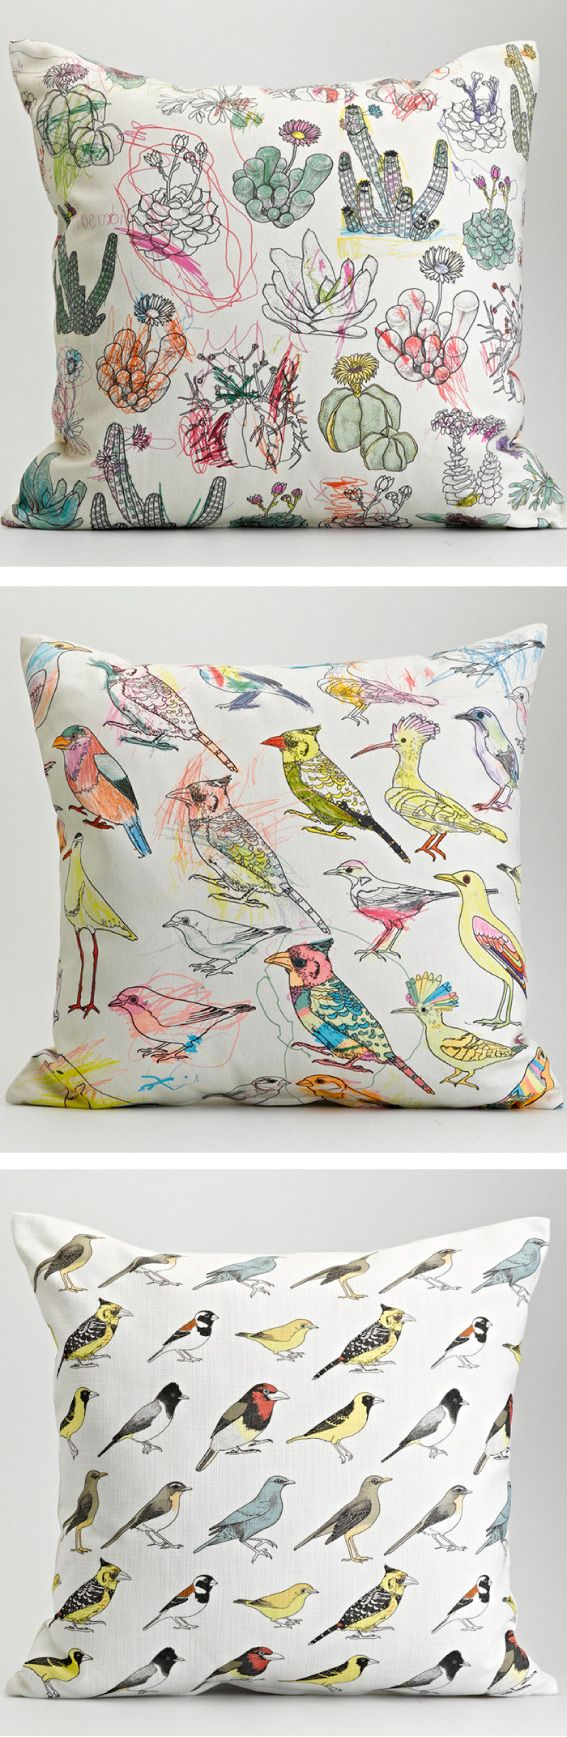 Color yourself cushions